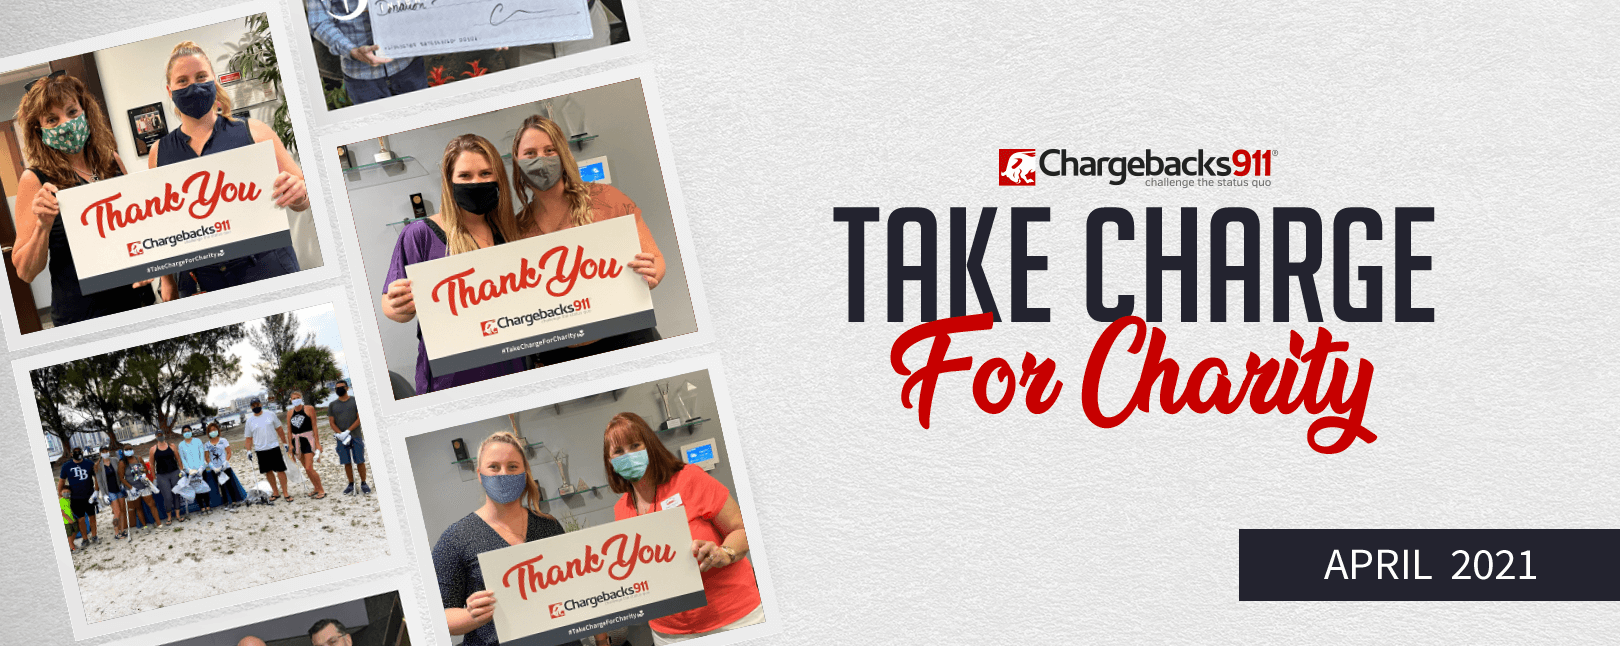 Take Charge for Charity – April 2021